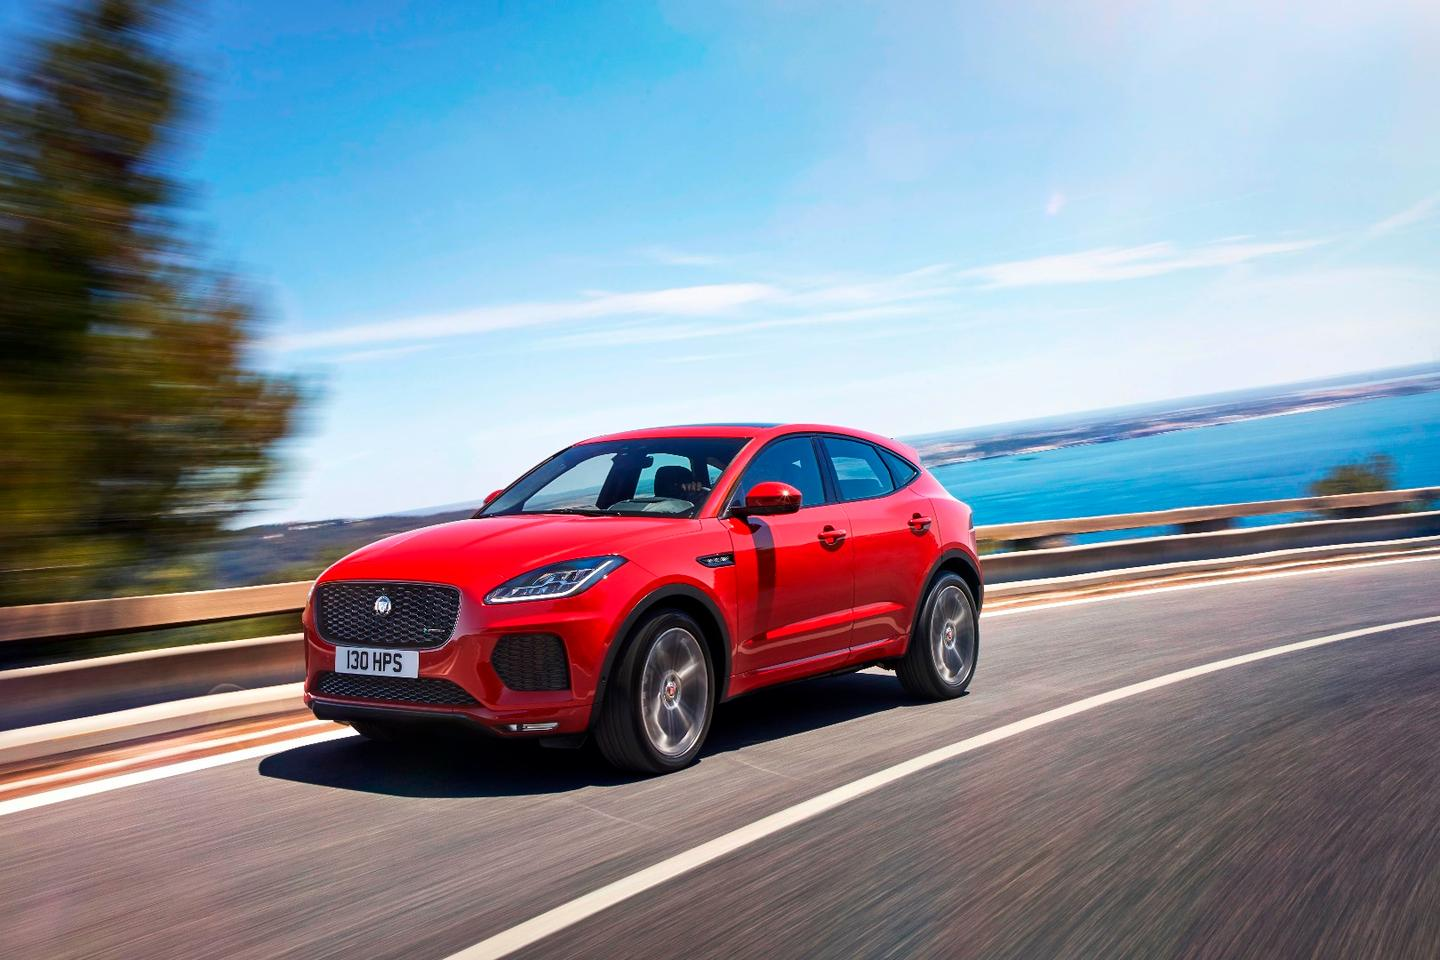 TheE-Pace joins the F-Pace in Jaguar's SUVlineup